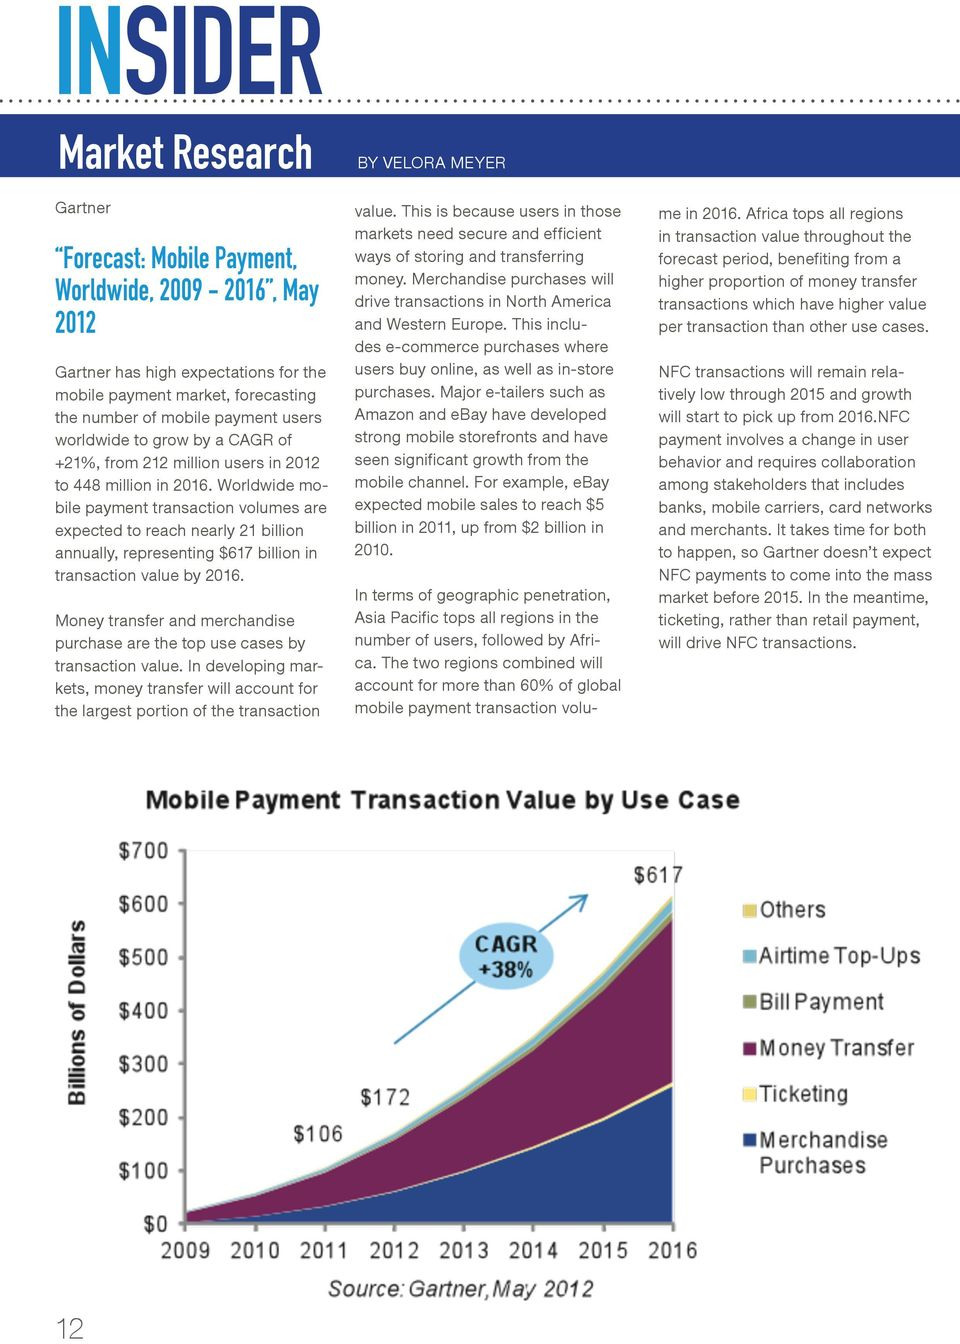 Worldwide mobile payment transaction volumes are expected to reach nearly 21 billion annually, representing $617 billion in transaction value by 2016.